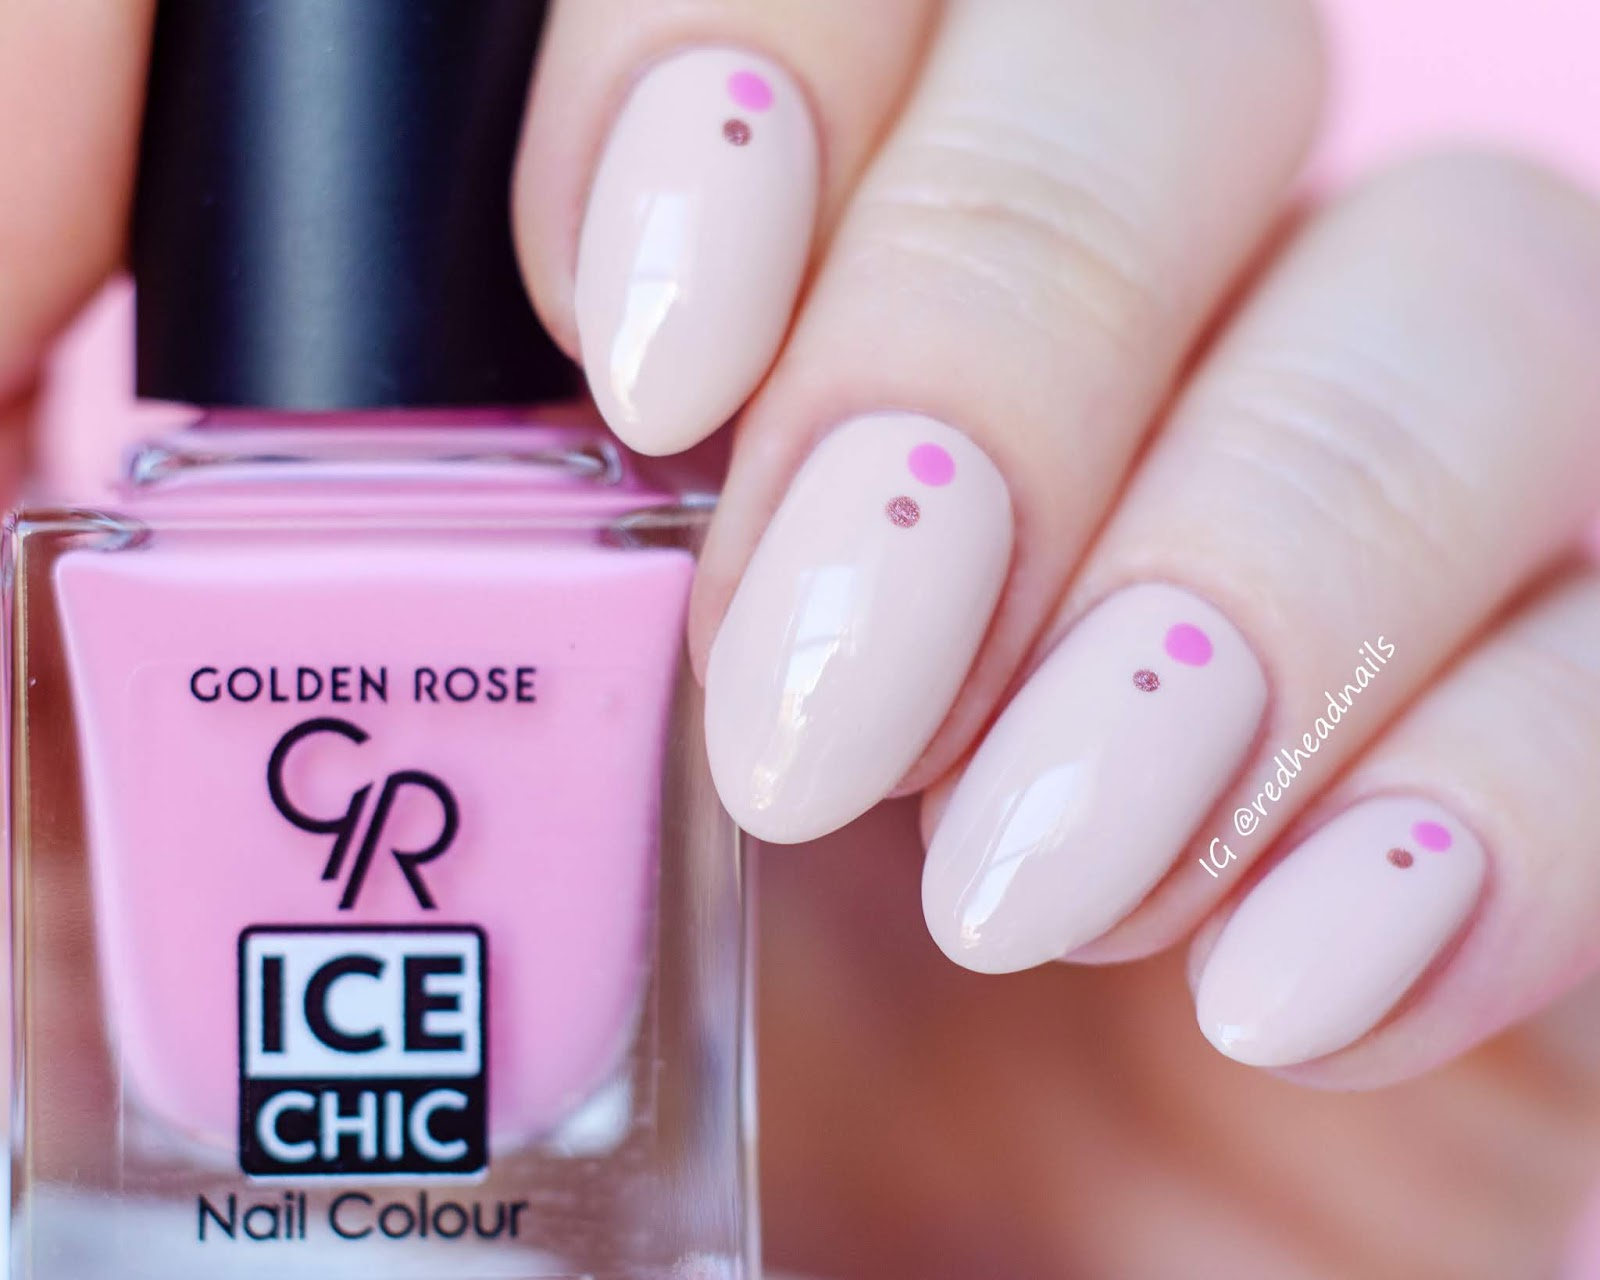 Golden Rose Ice Chic no 08